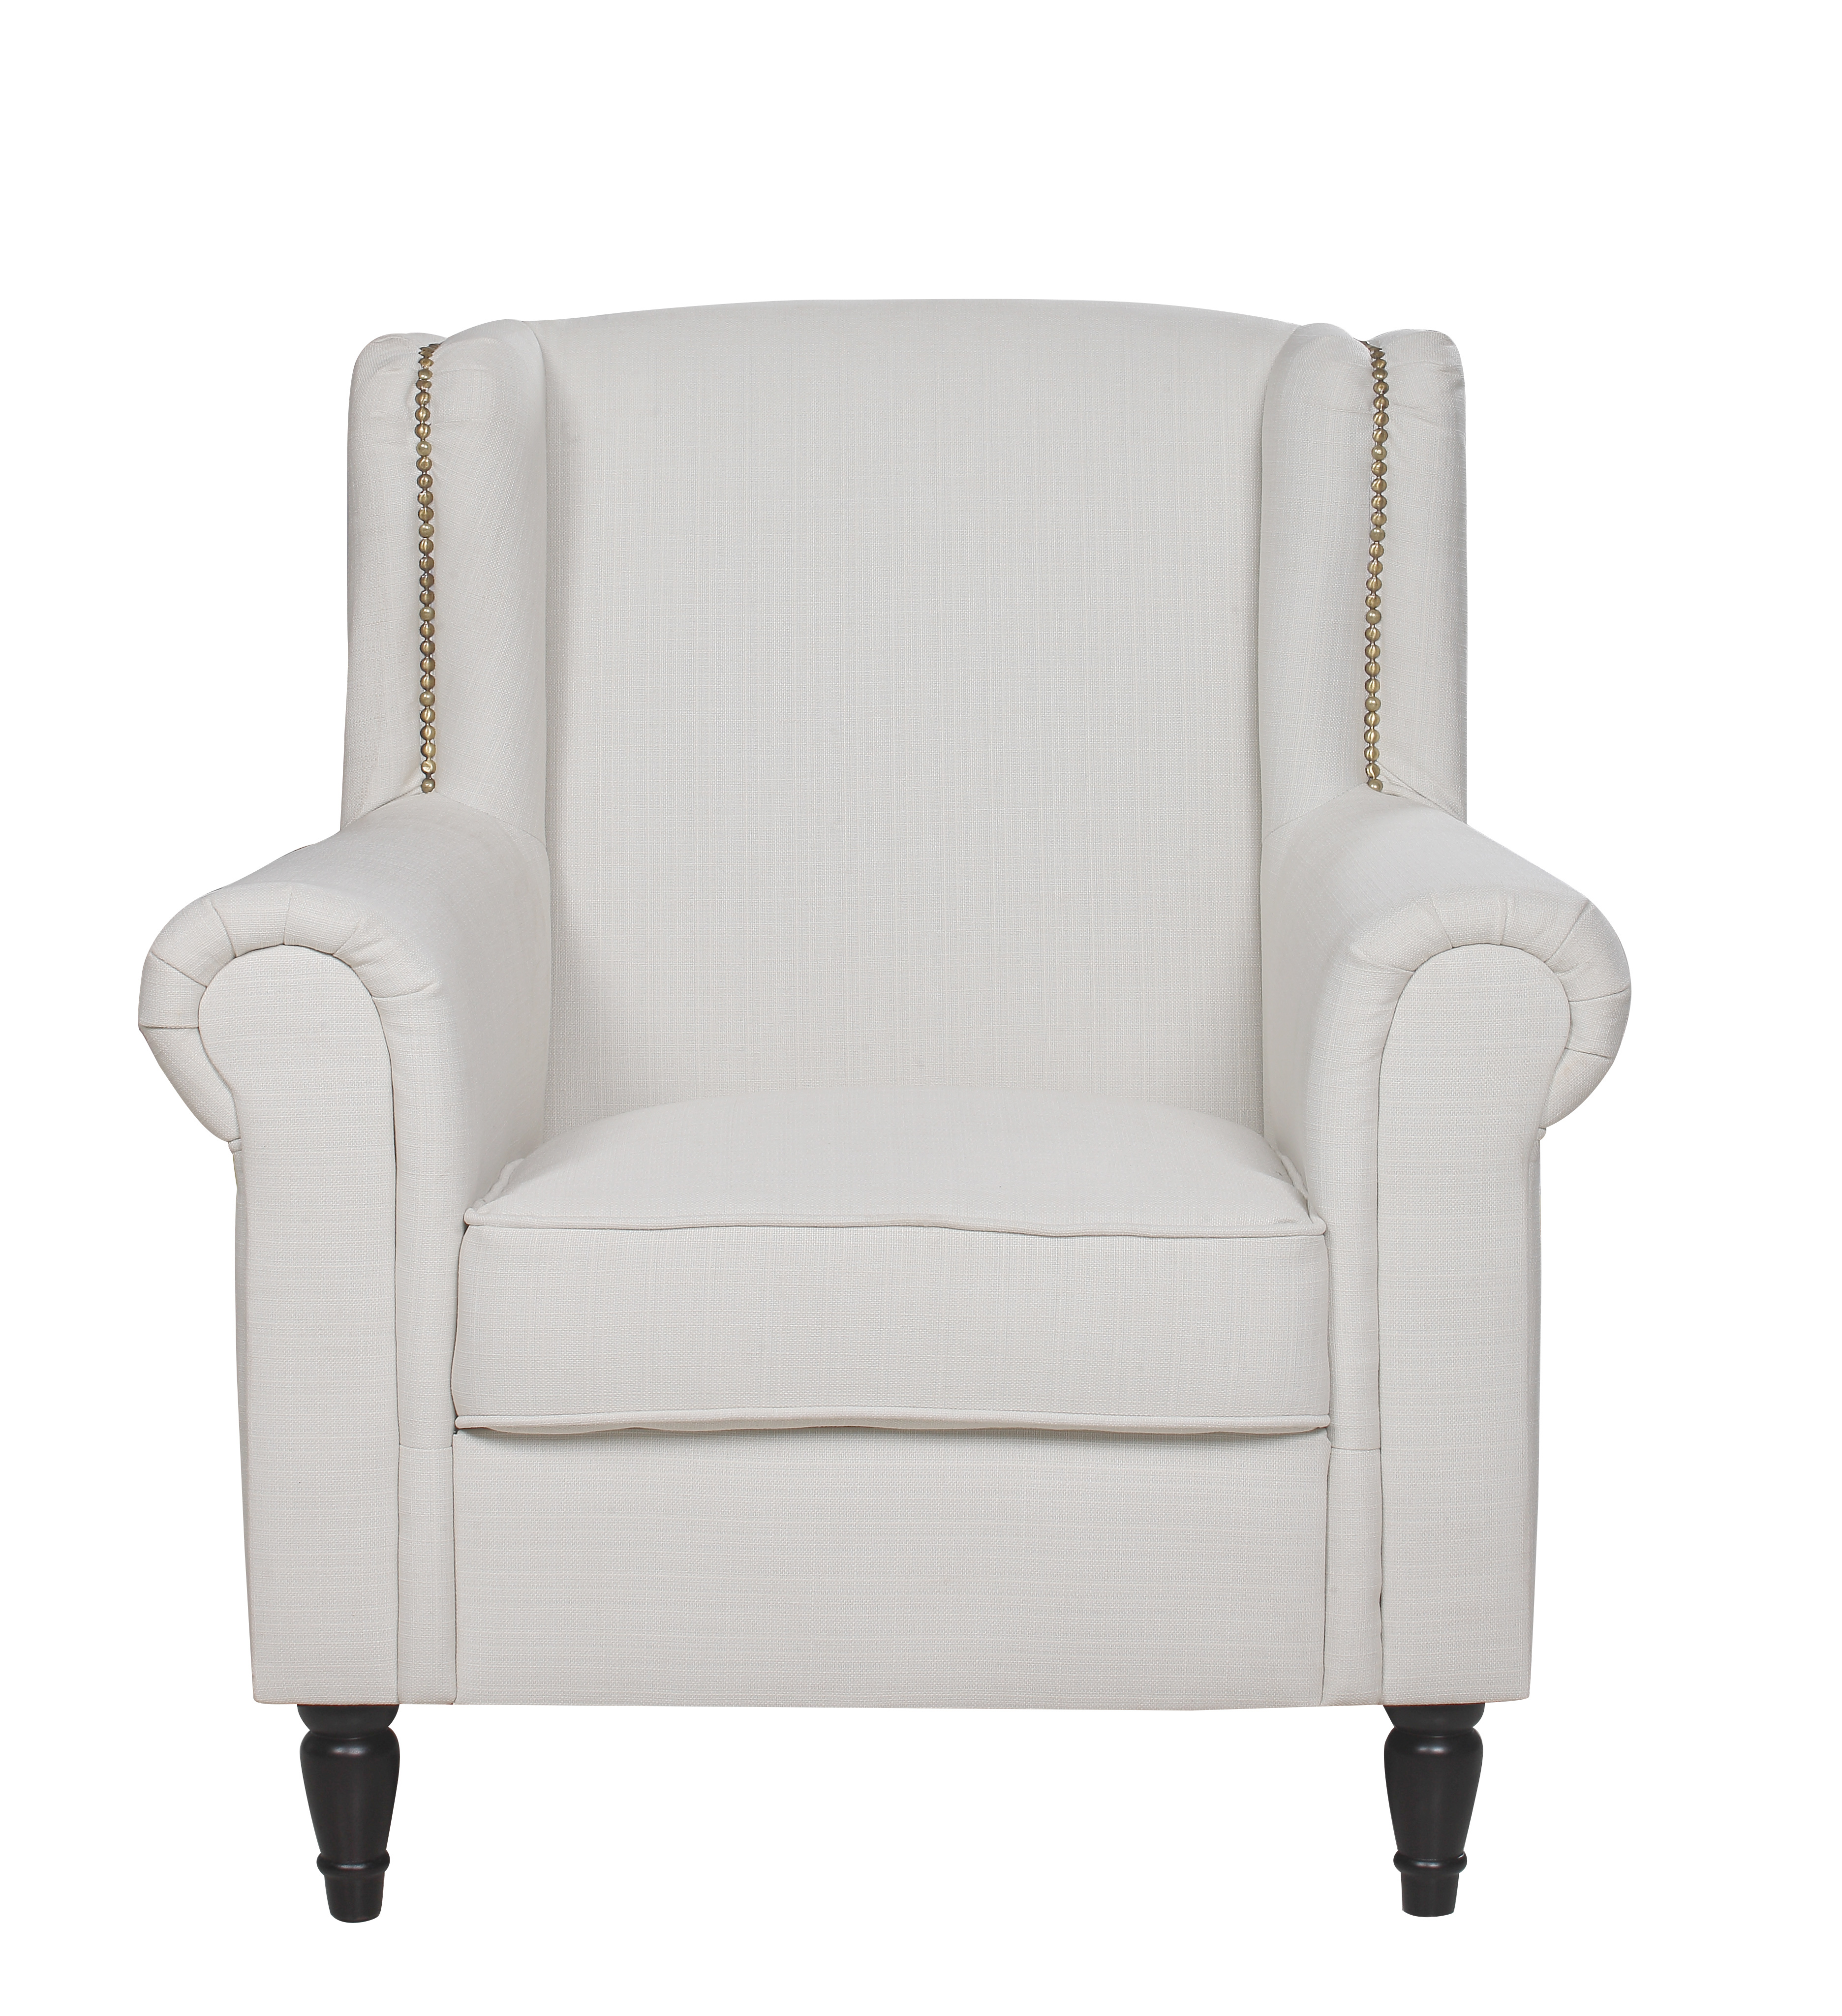 Classic Style Ivory Linen Armchair With Scroll Arms by Sofamania